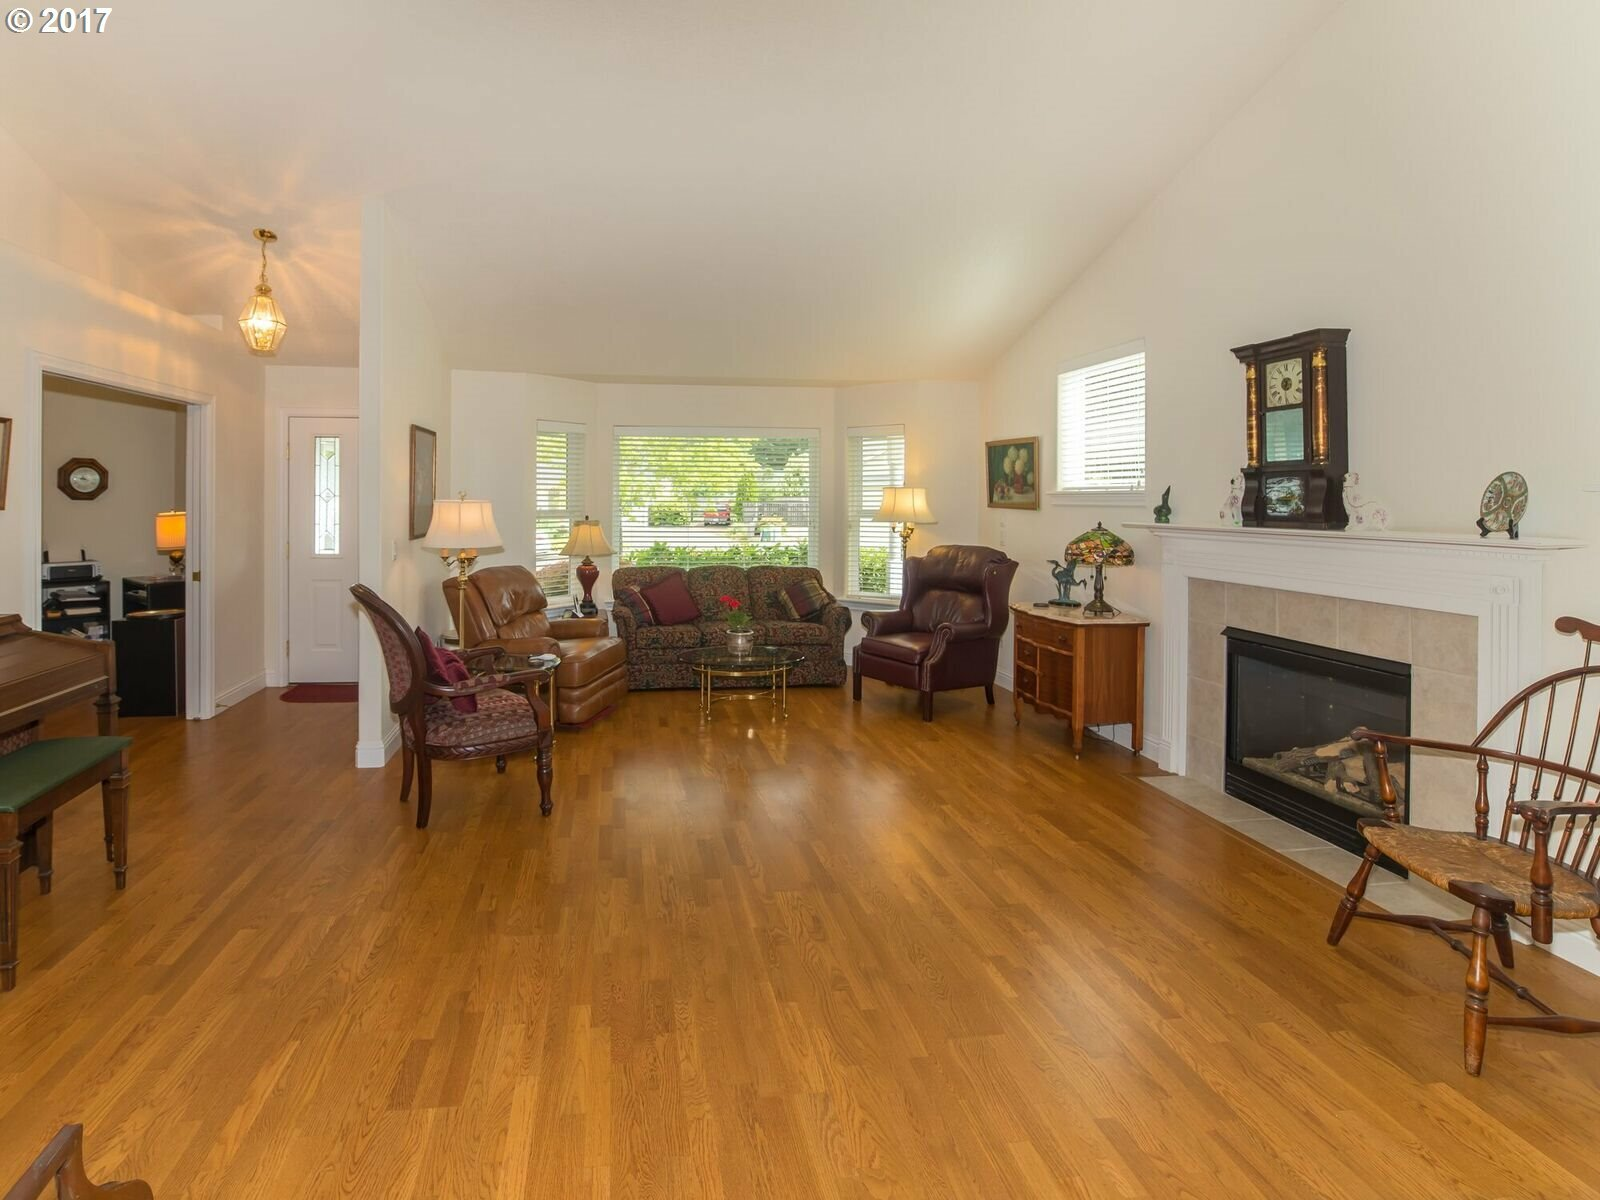 1575 Fairview Pl, Cottage Grove, OR - USA (photo 5)